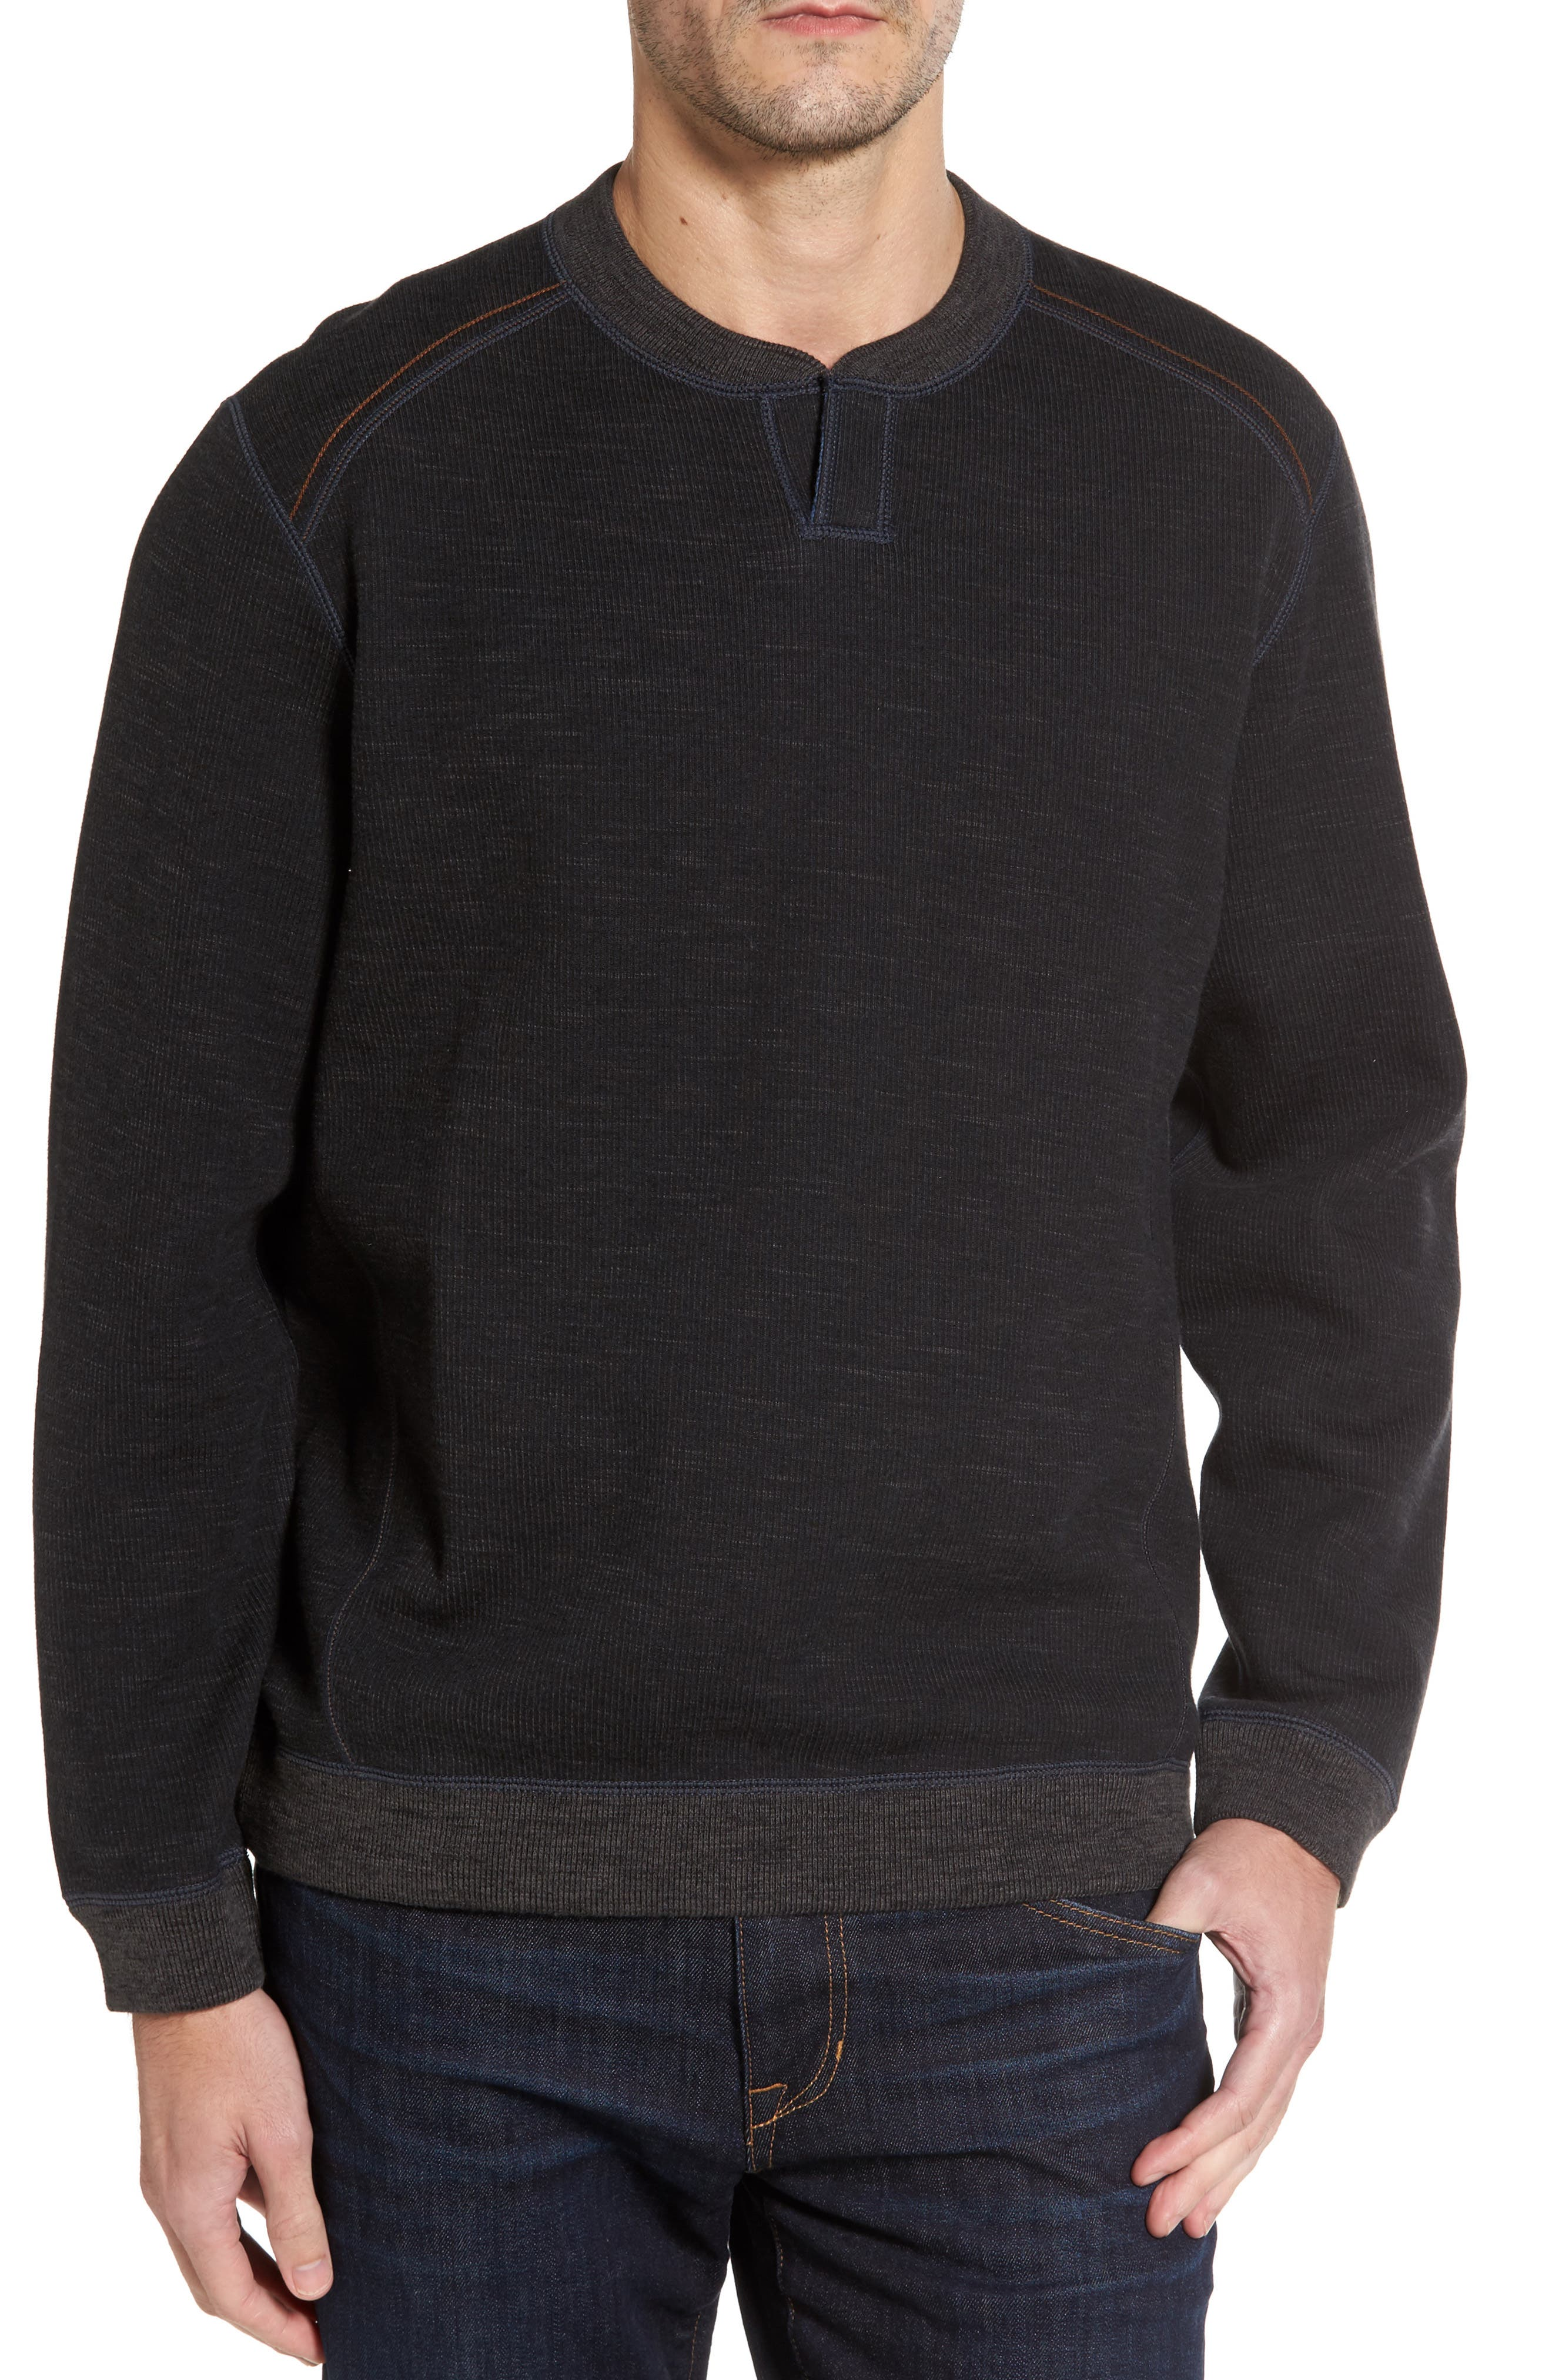 Flipsider Abaco Pullover,                         Main,                         color, Noir